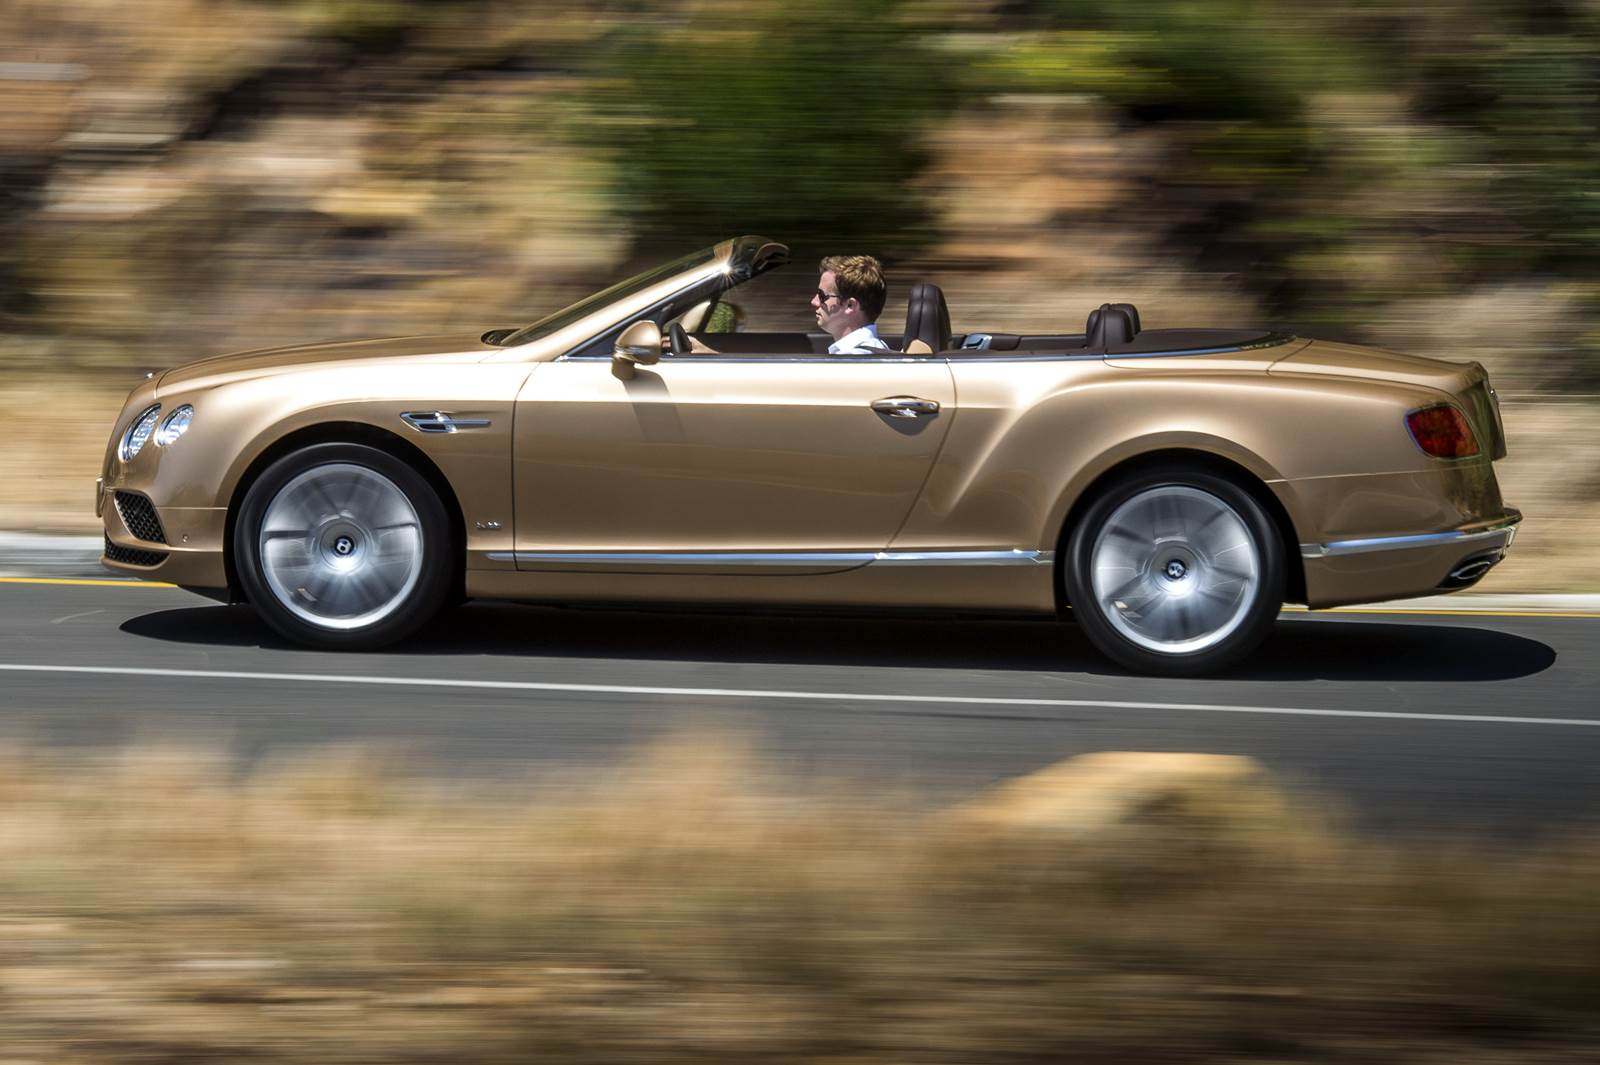 Bentley Continental GT W12 Speed 2016 - Cabriolet